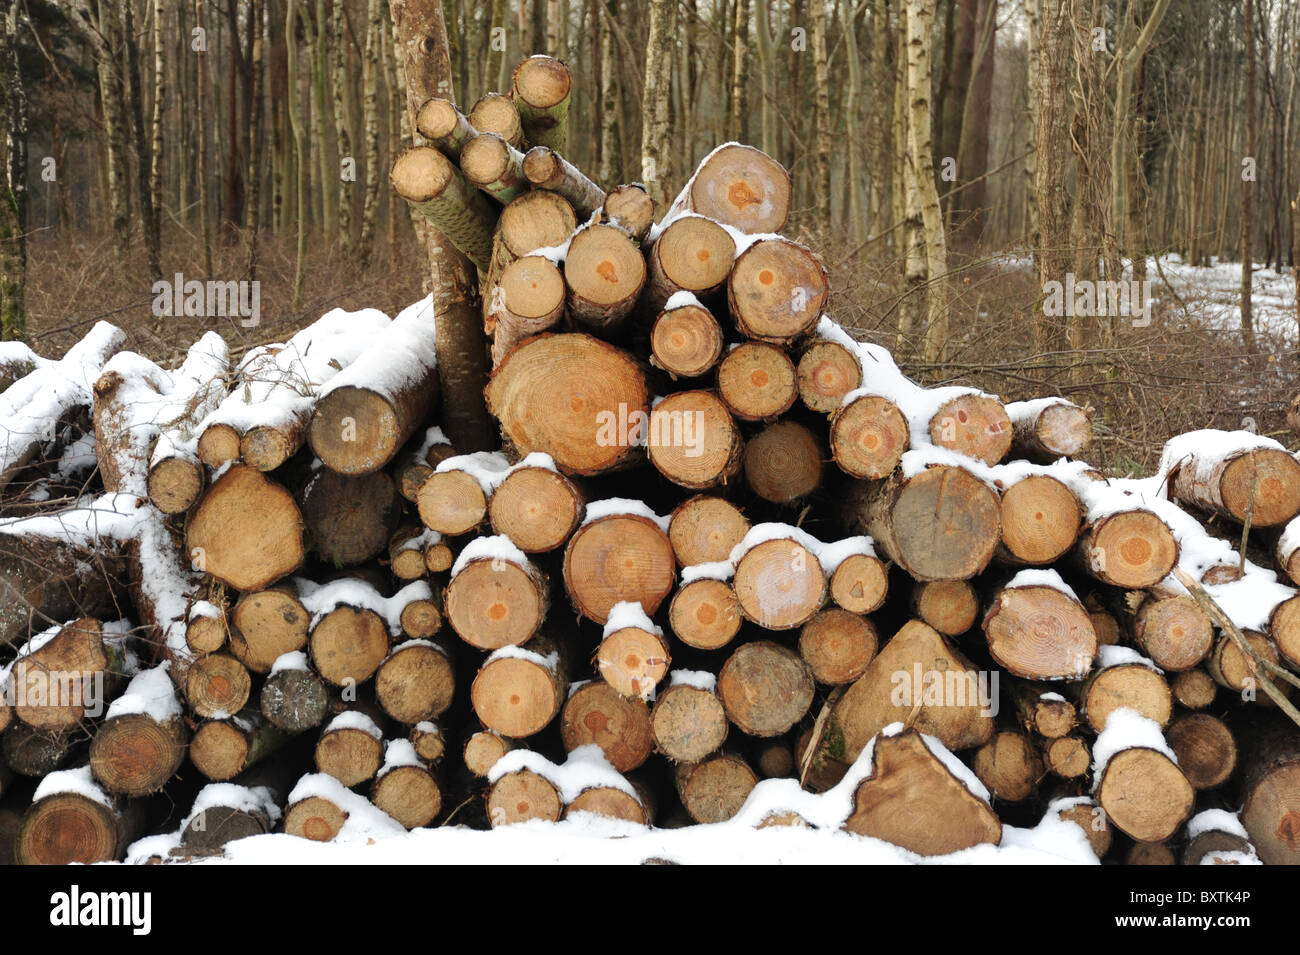 Logs covered in snow in woodland - Stock Image